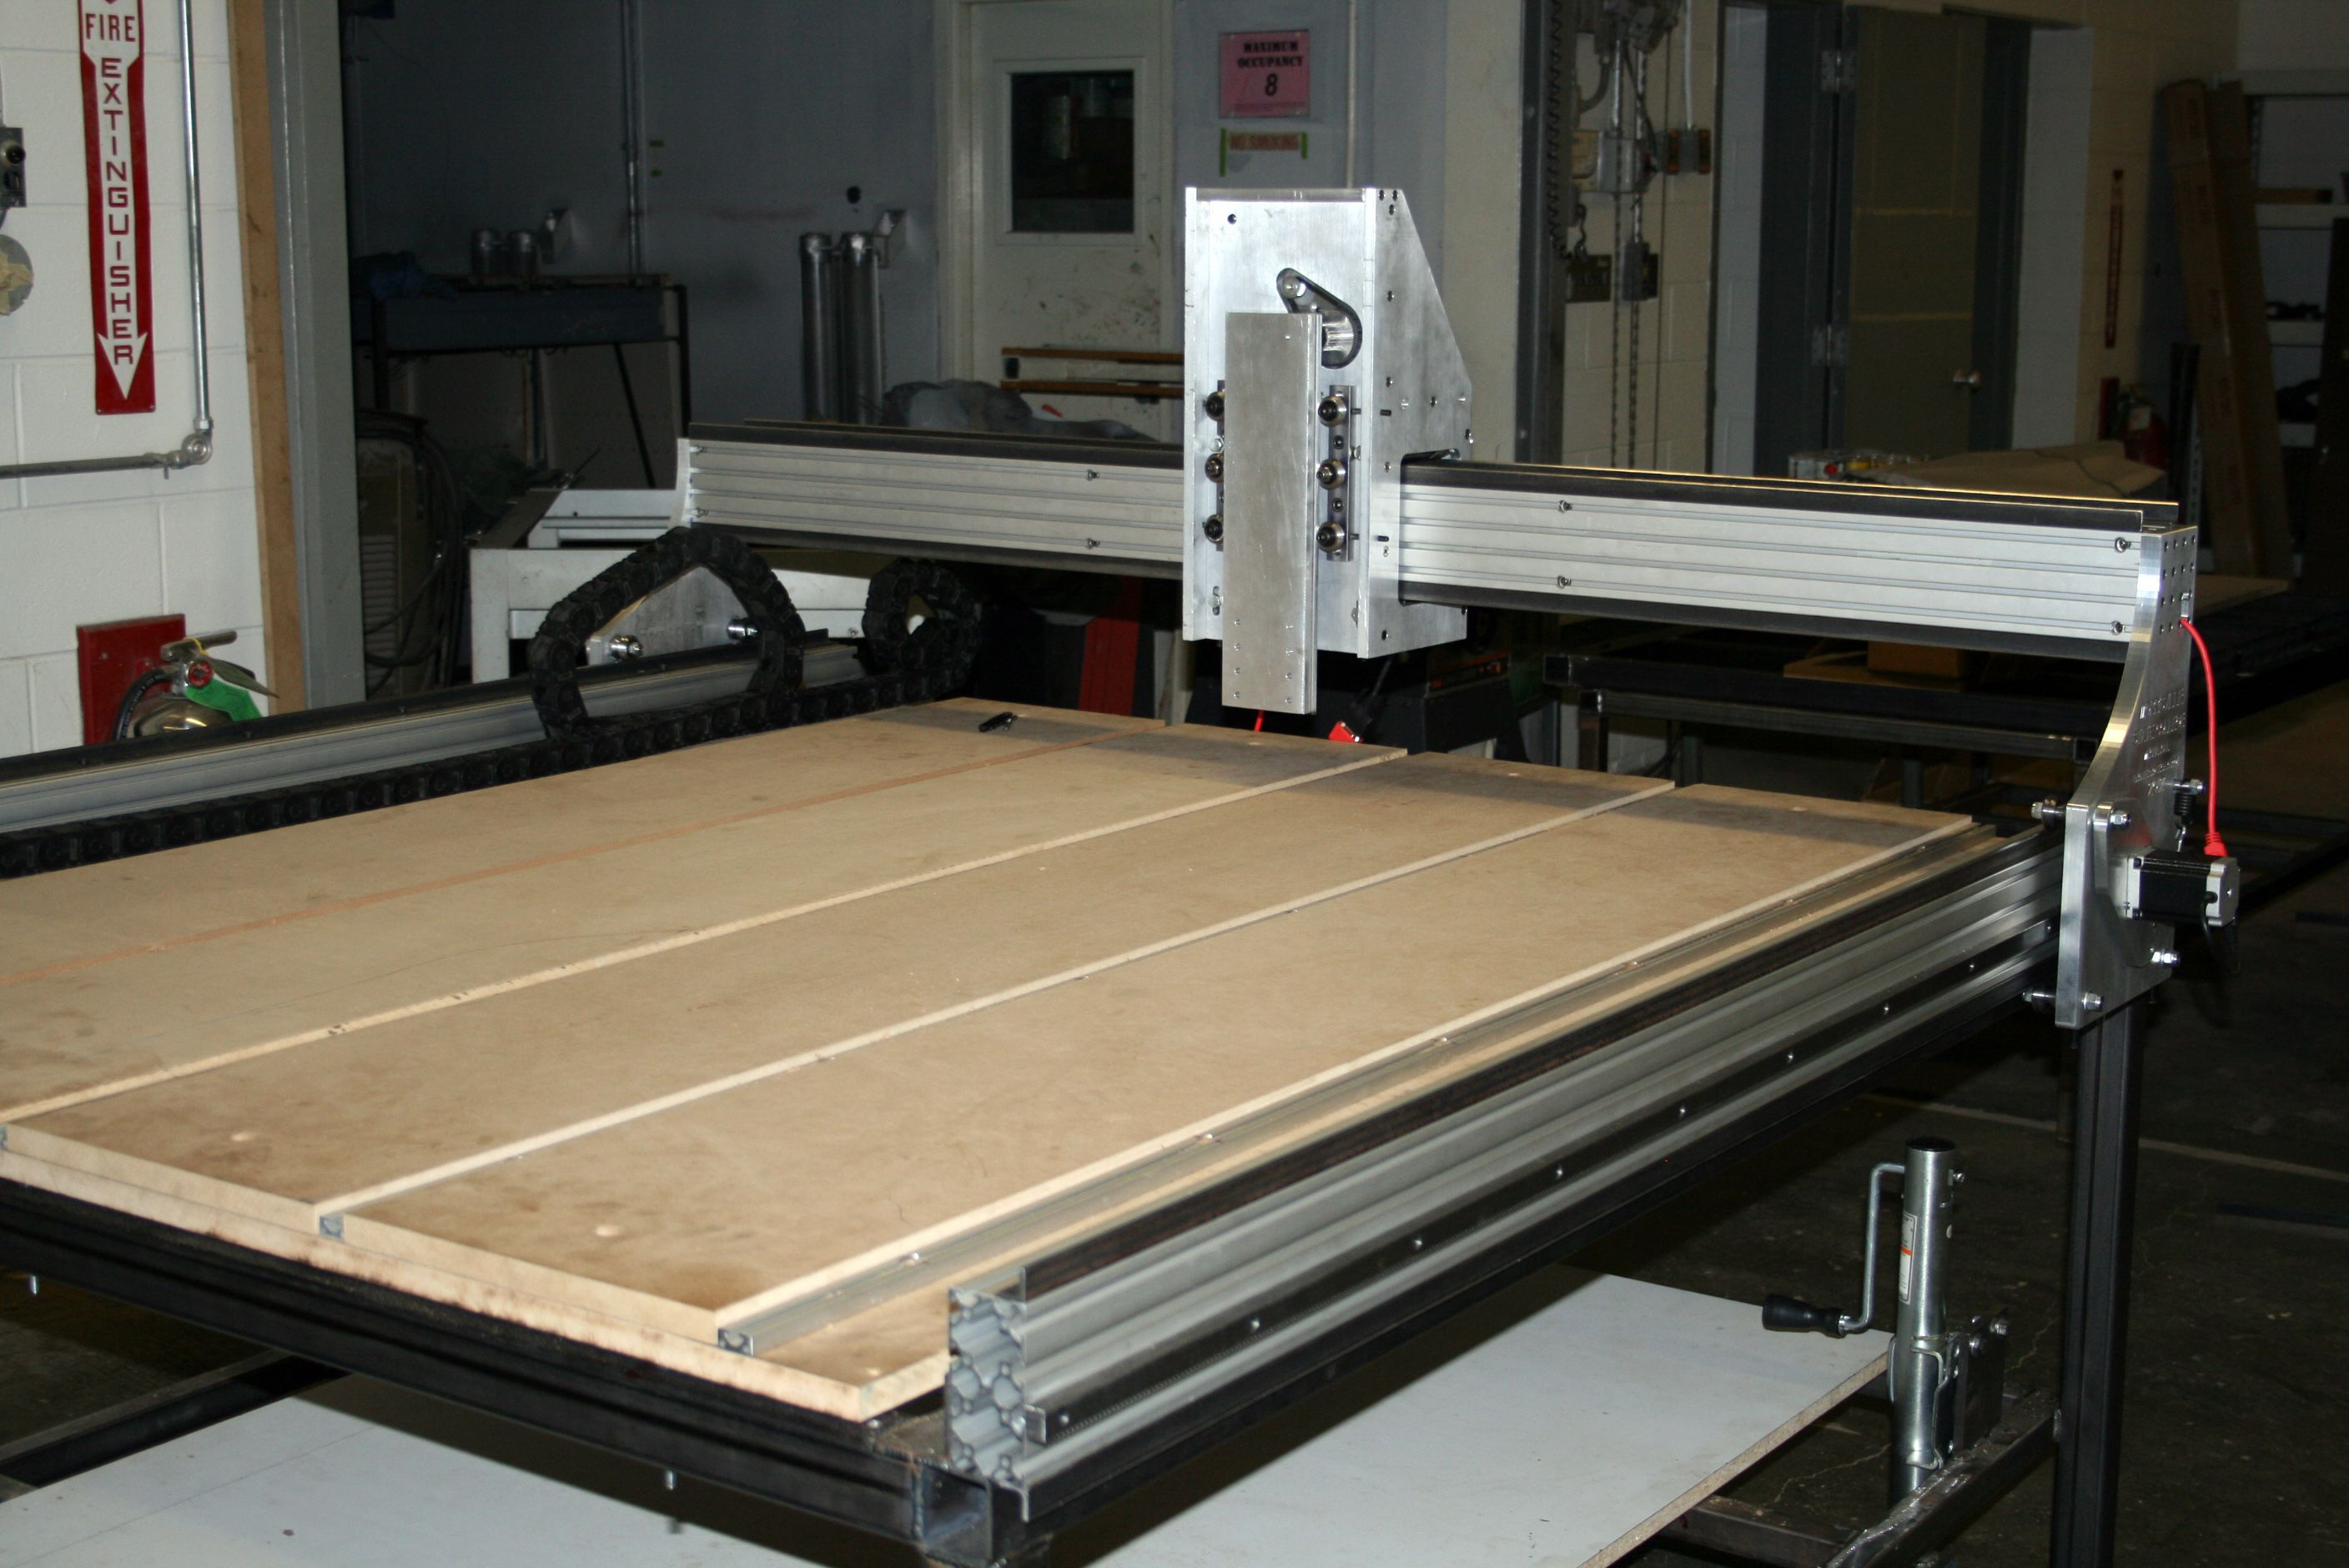 Img5084g cnc pinterest cnc cnc router table and router how to build cnc router table plans pdf woodworking plans cnc router table plans the table is 10 wide homemade cnc router using table plans from solsylva we greentooth Images